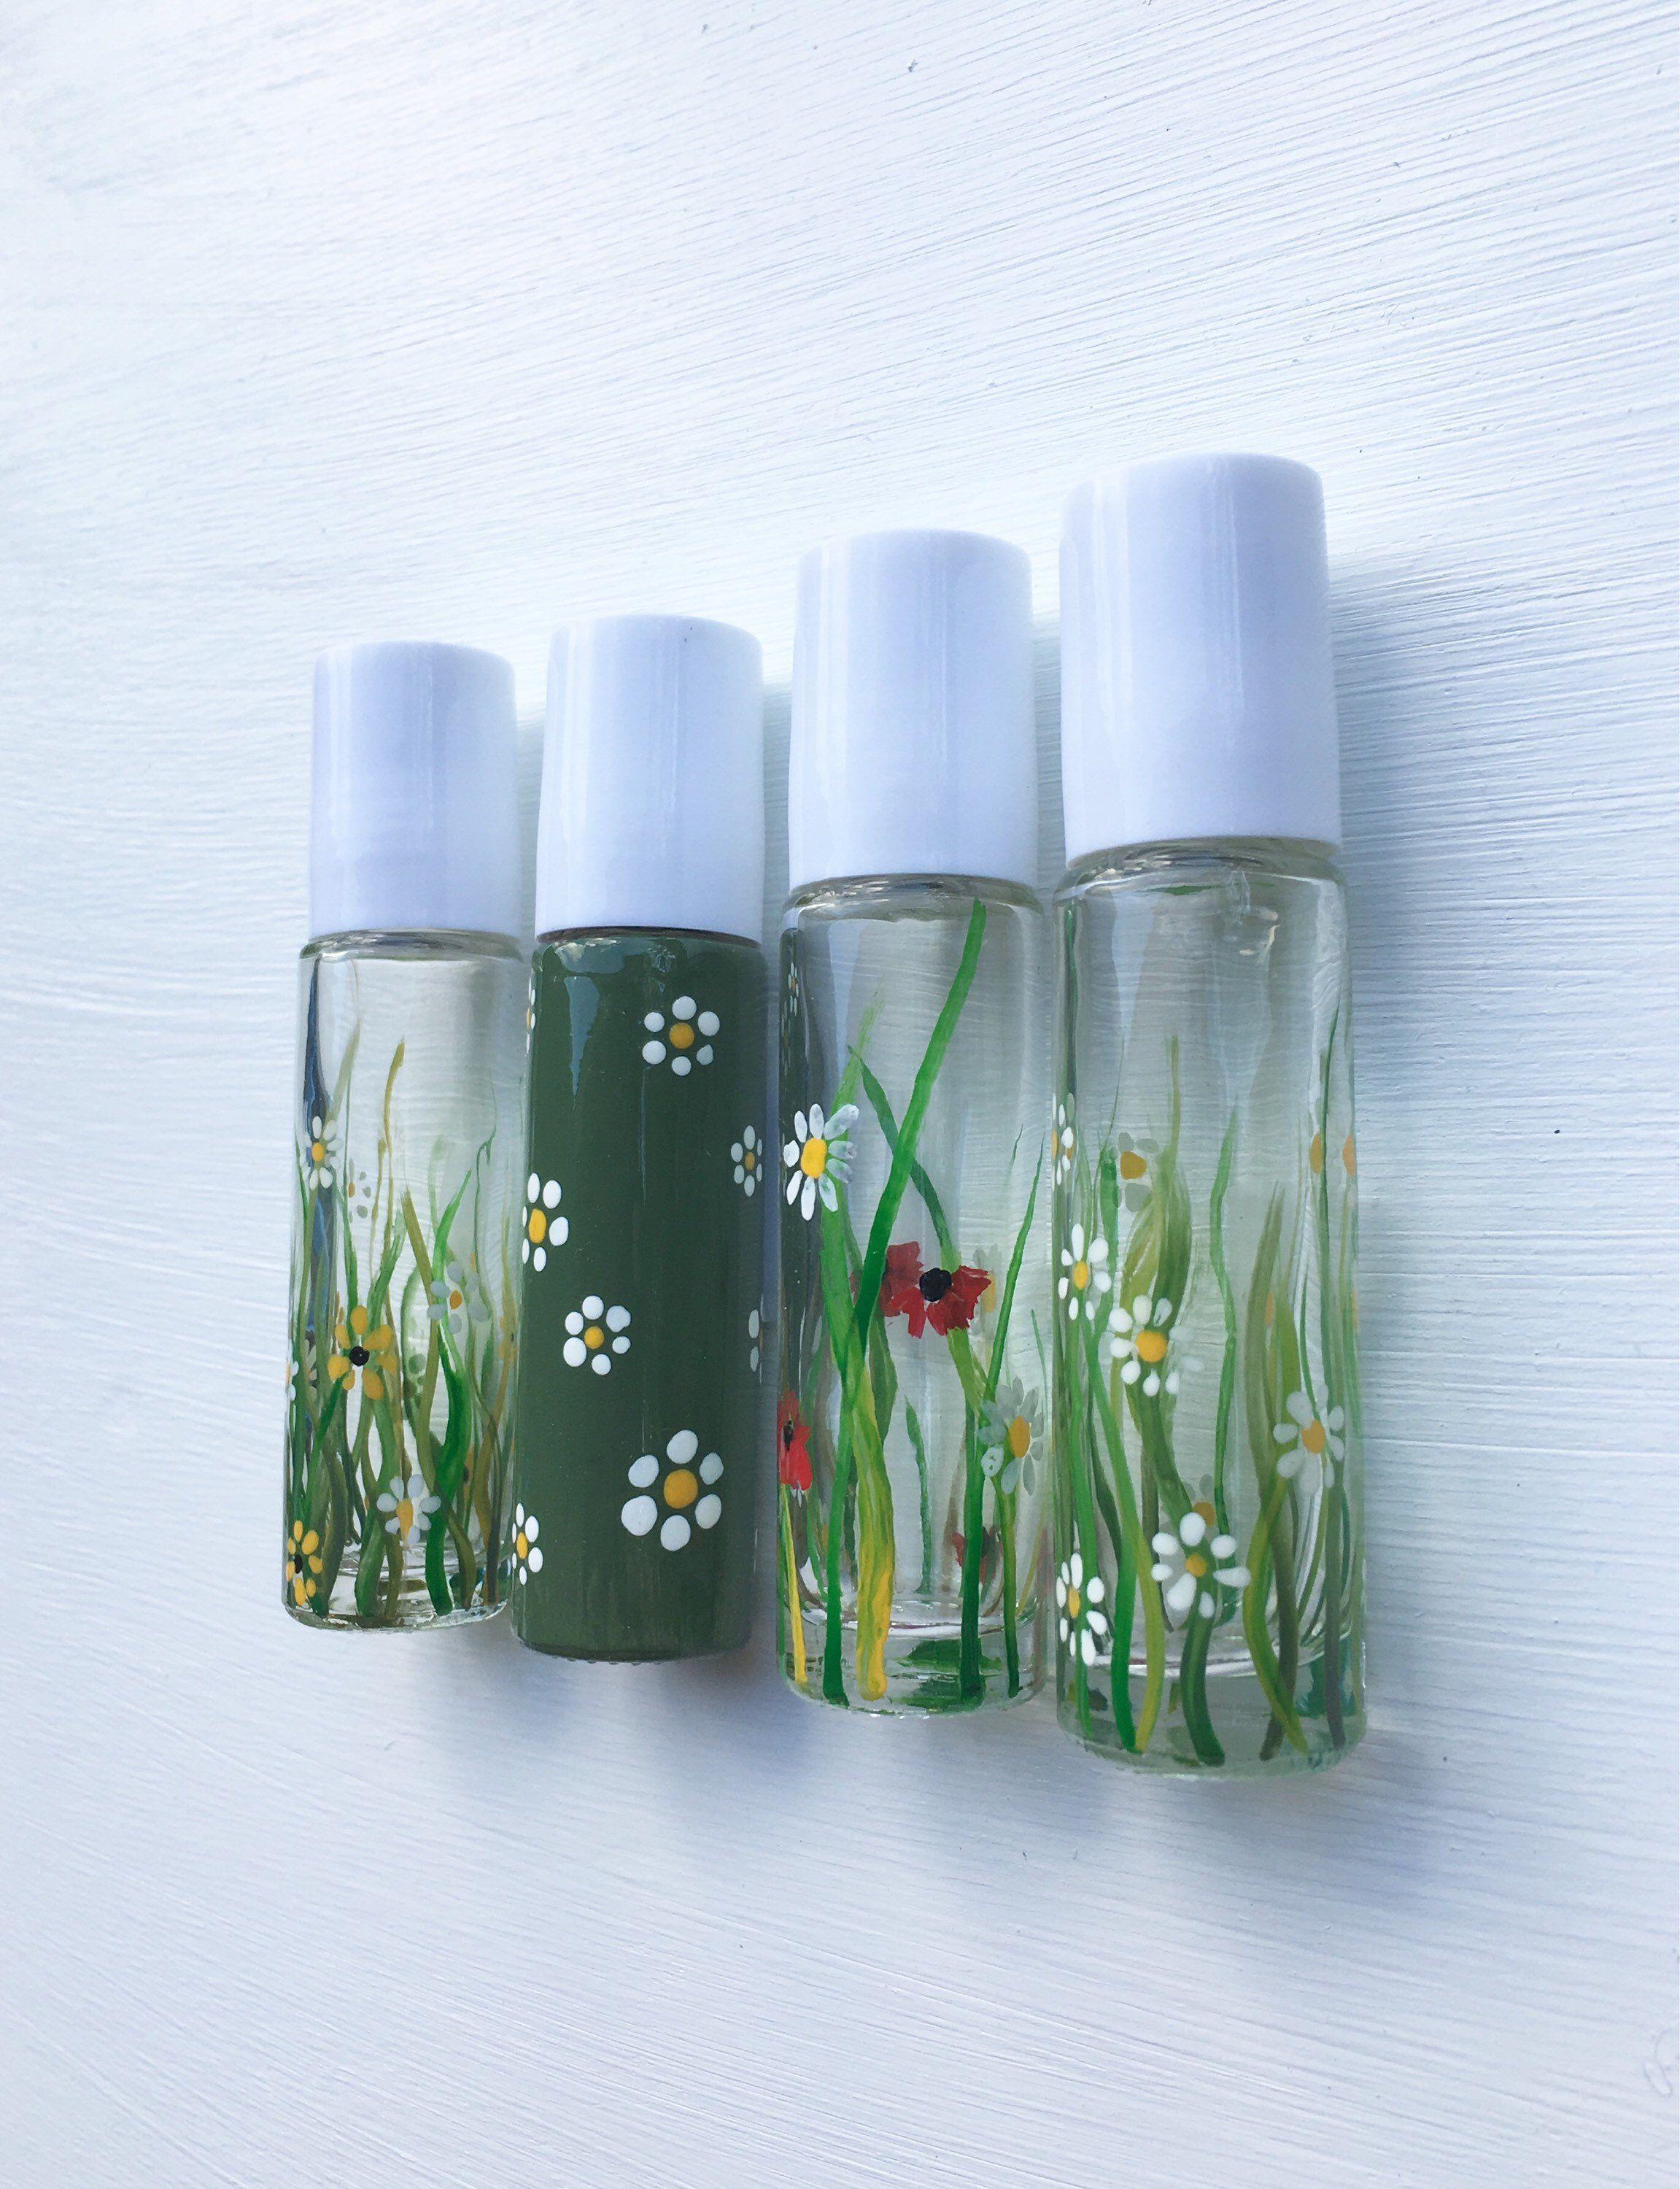 10ml Essential Oil Roller Bottle Hand Painted And Great For Aromatherapy And Natural Well Essential Oil Roller Bottle Essential Oil Roller Roller Bottle Blends